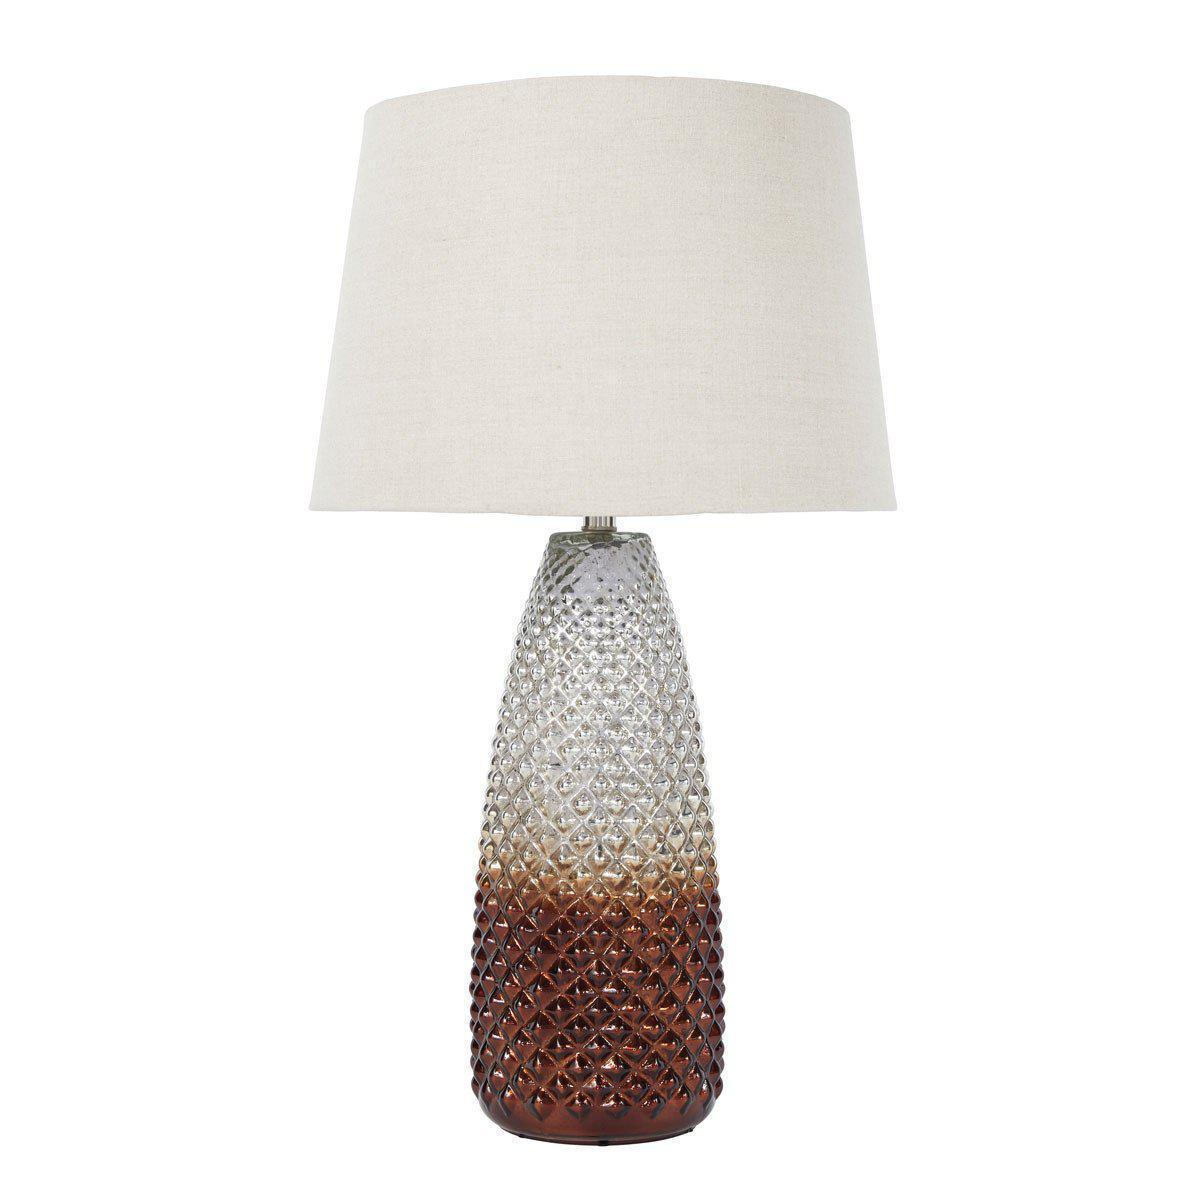 Shavondra Table Lamp